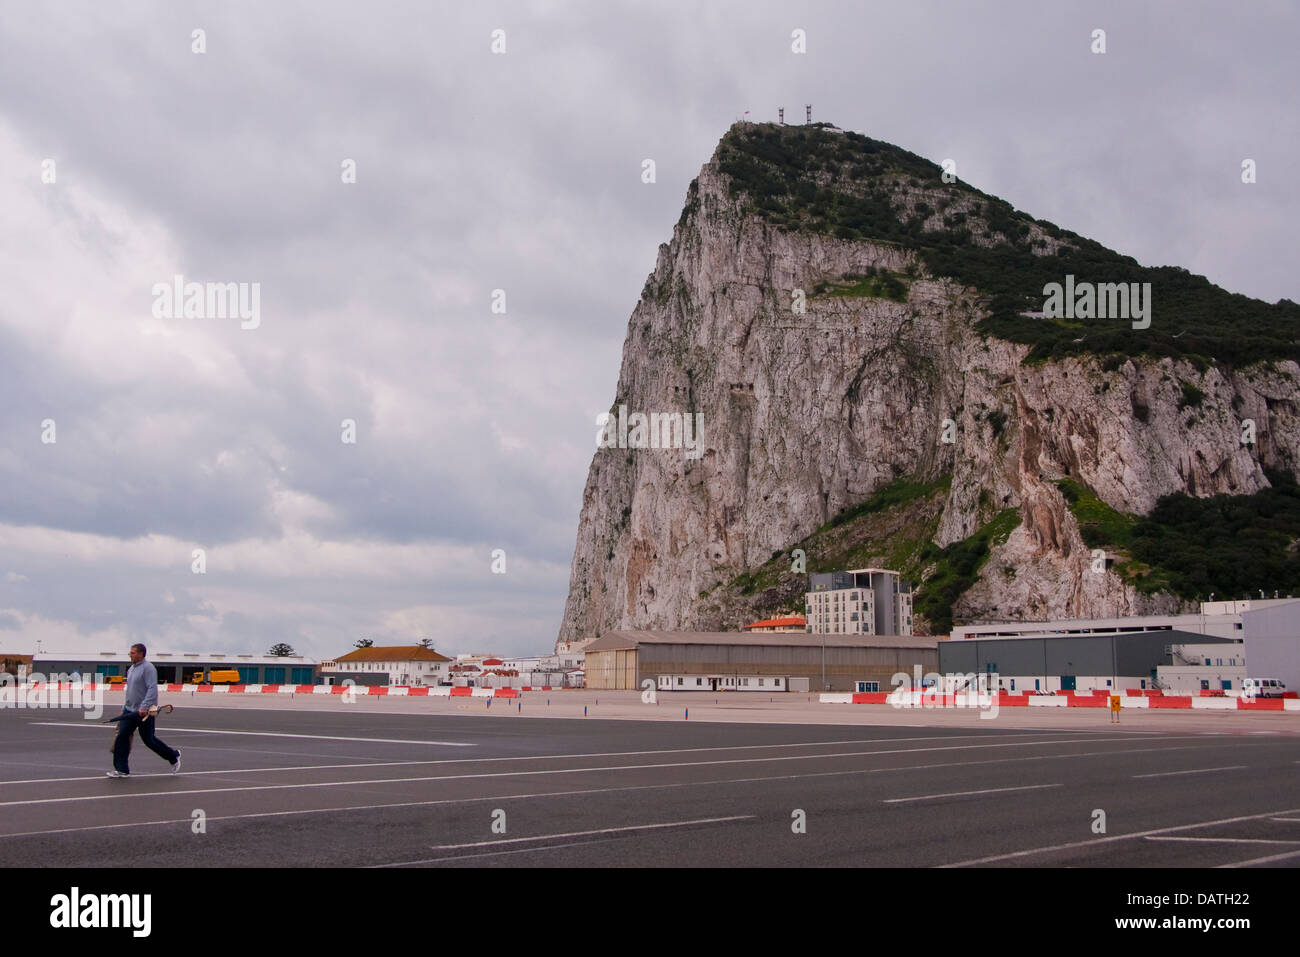 Pedestrian crossing the airport runway in Gibraltar. - Stock Image